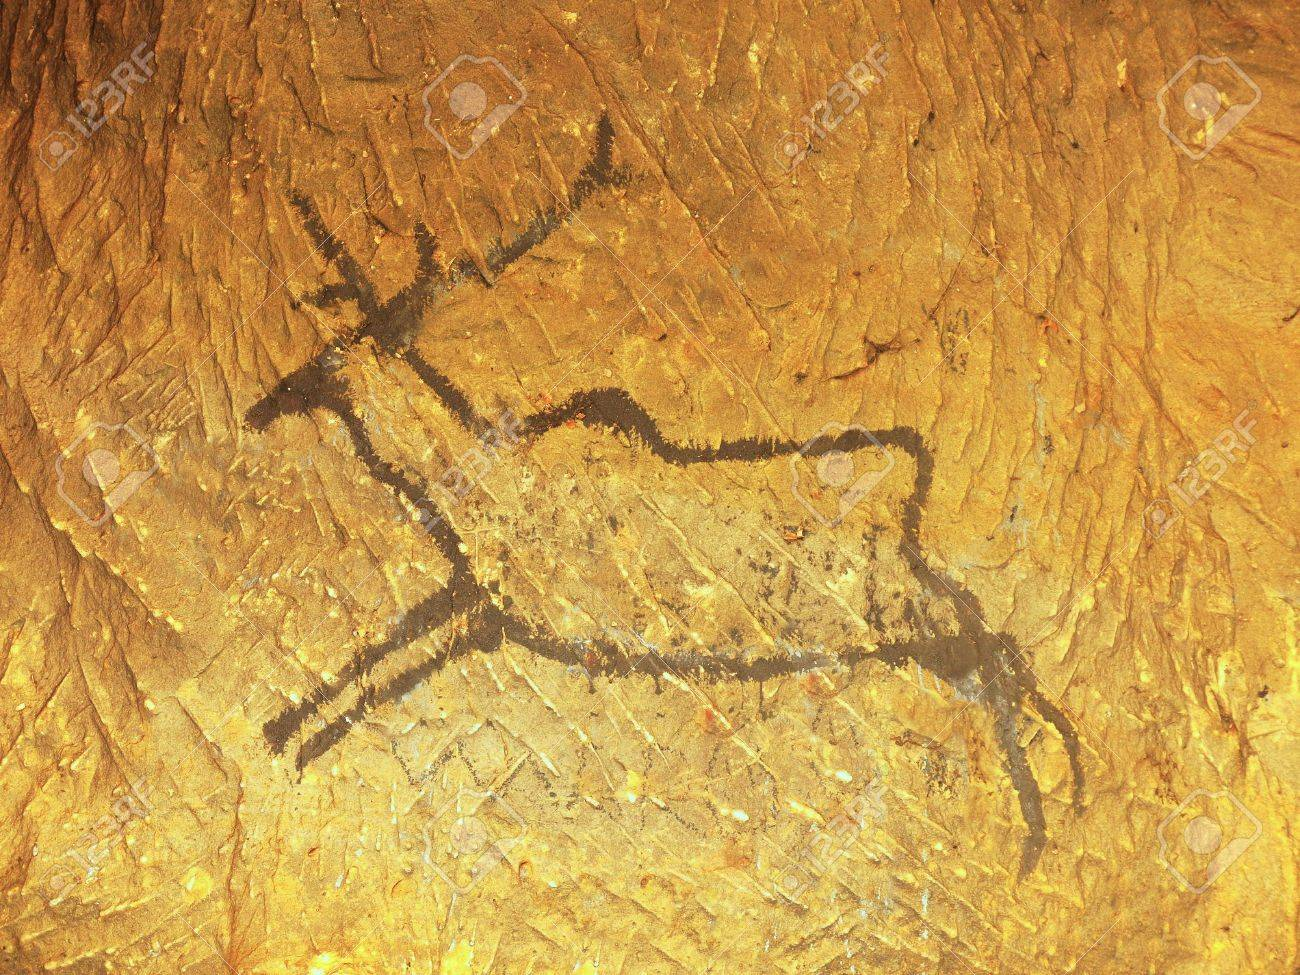 Black Carbon Paint Of Deer On Sandstone Wall, Copy Of Prehistoric ...